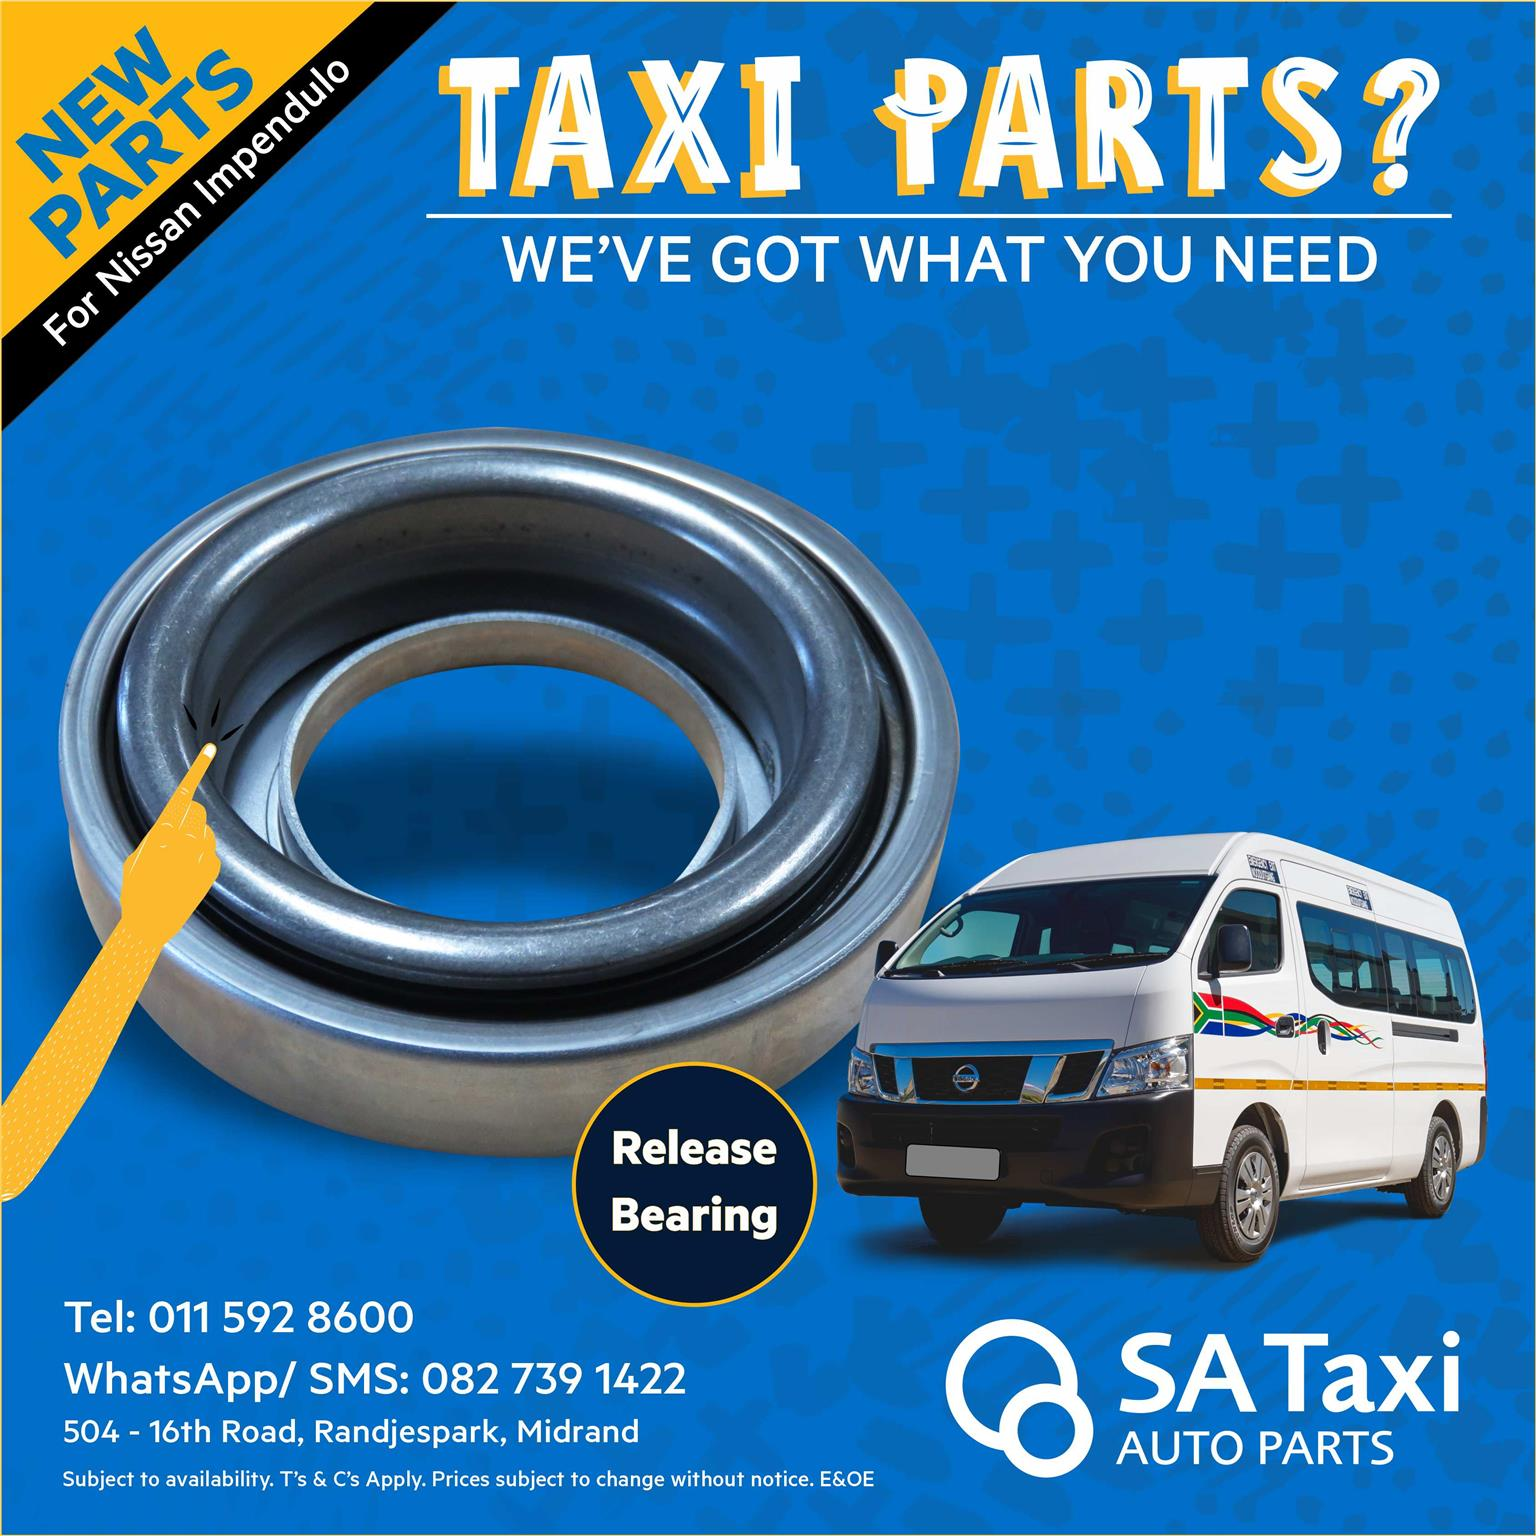 NEW Release Bearing for Nissan Impendulo - SA Taxi Auto Parts quality spares